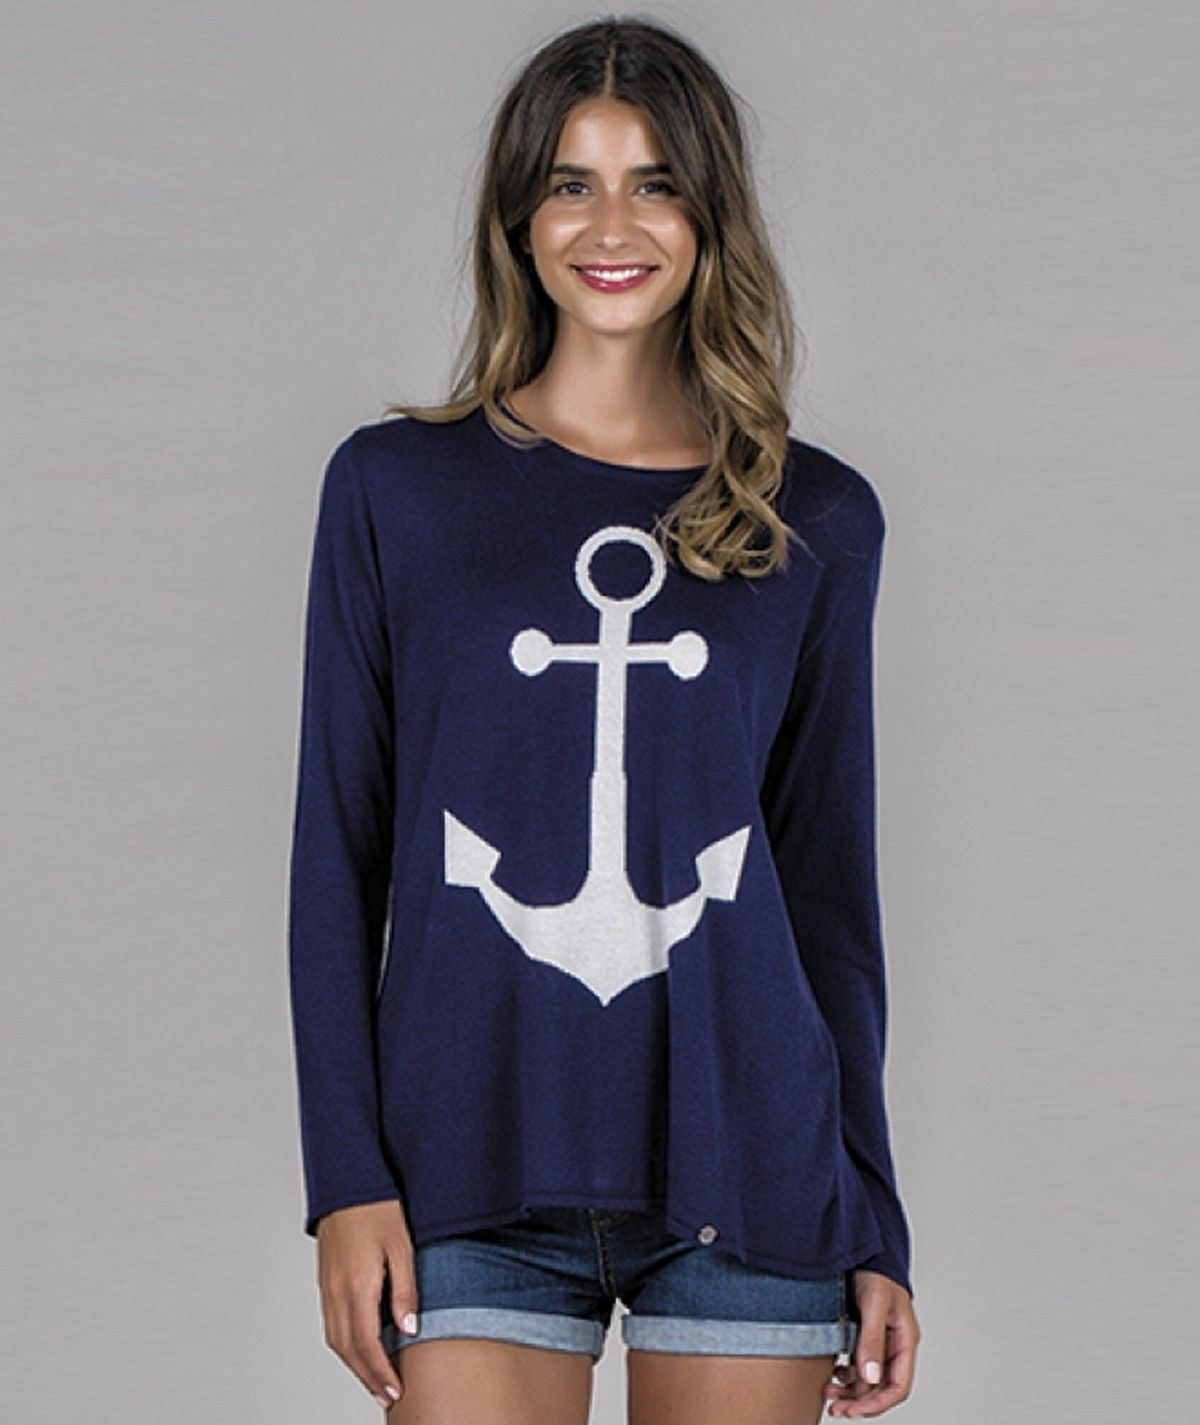 Sweater with anchor motif